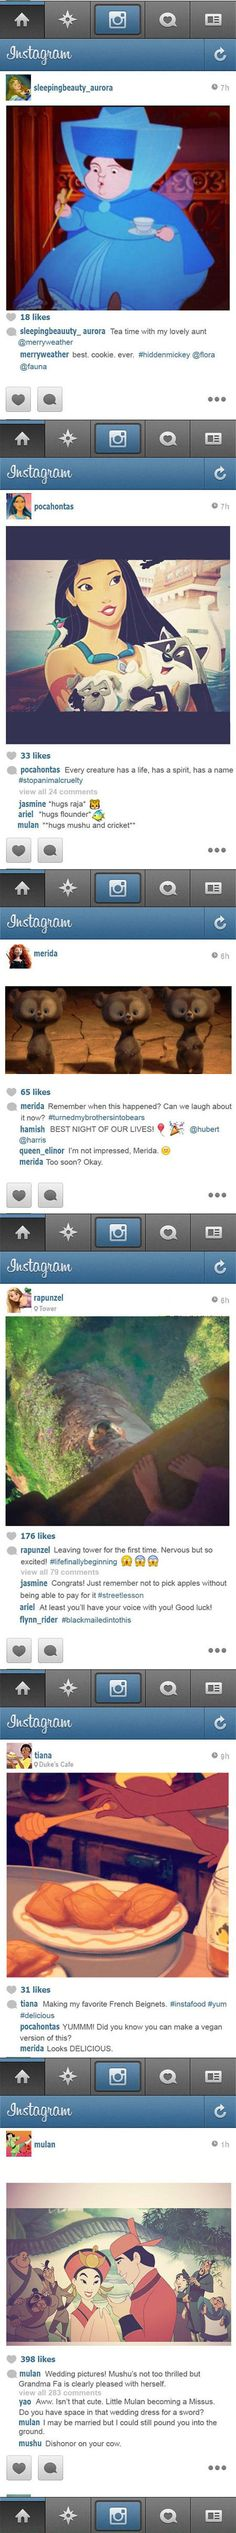 If Disney princesses had Instagram. I'm not into Instagram but some of these are really clever!